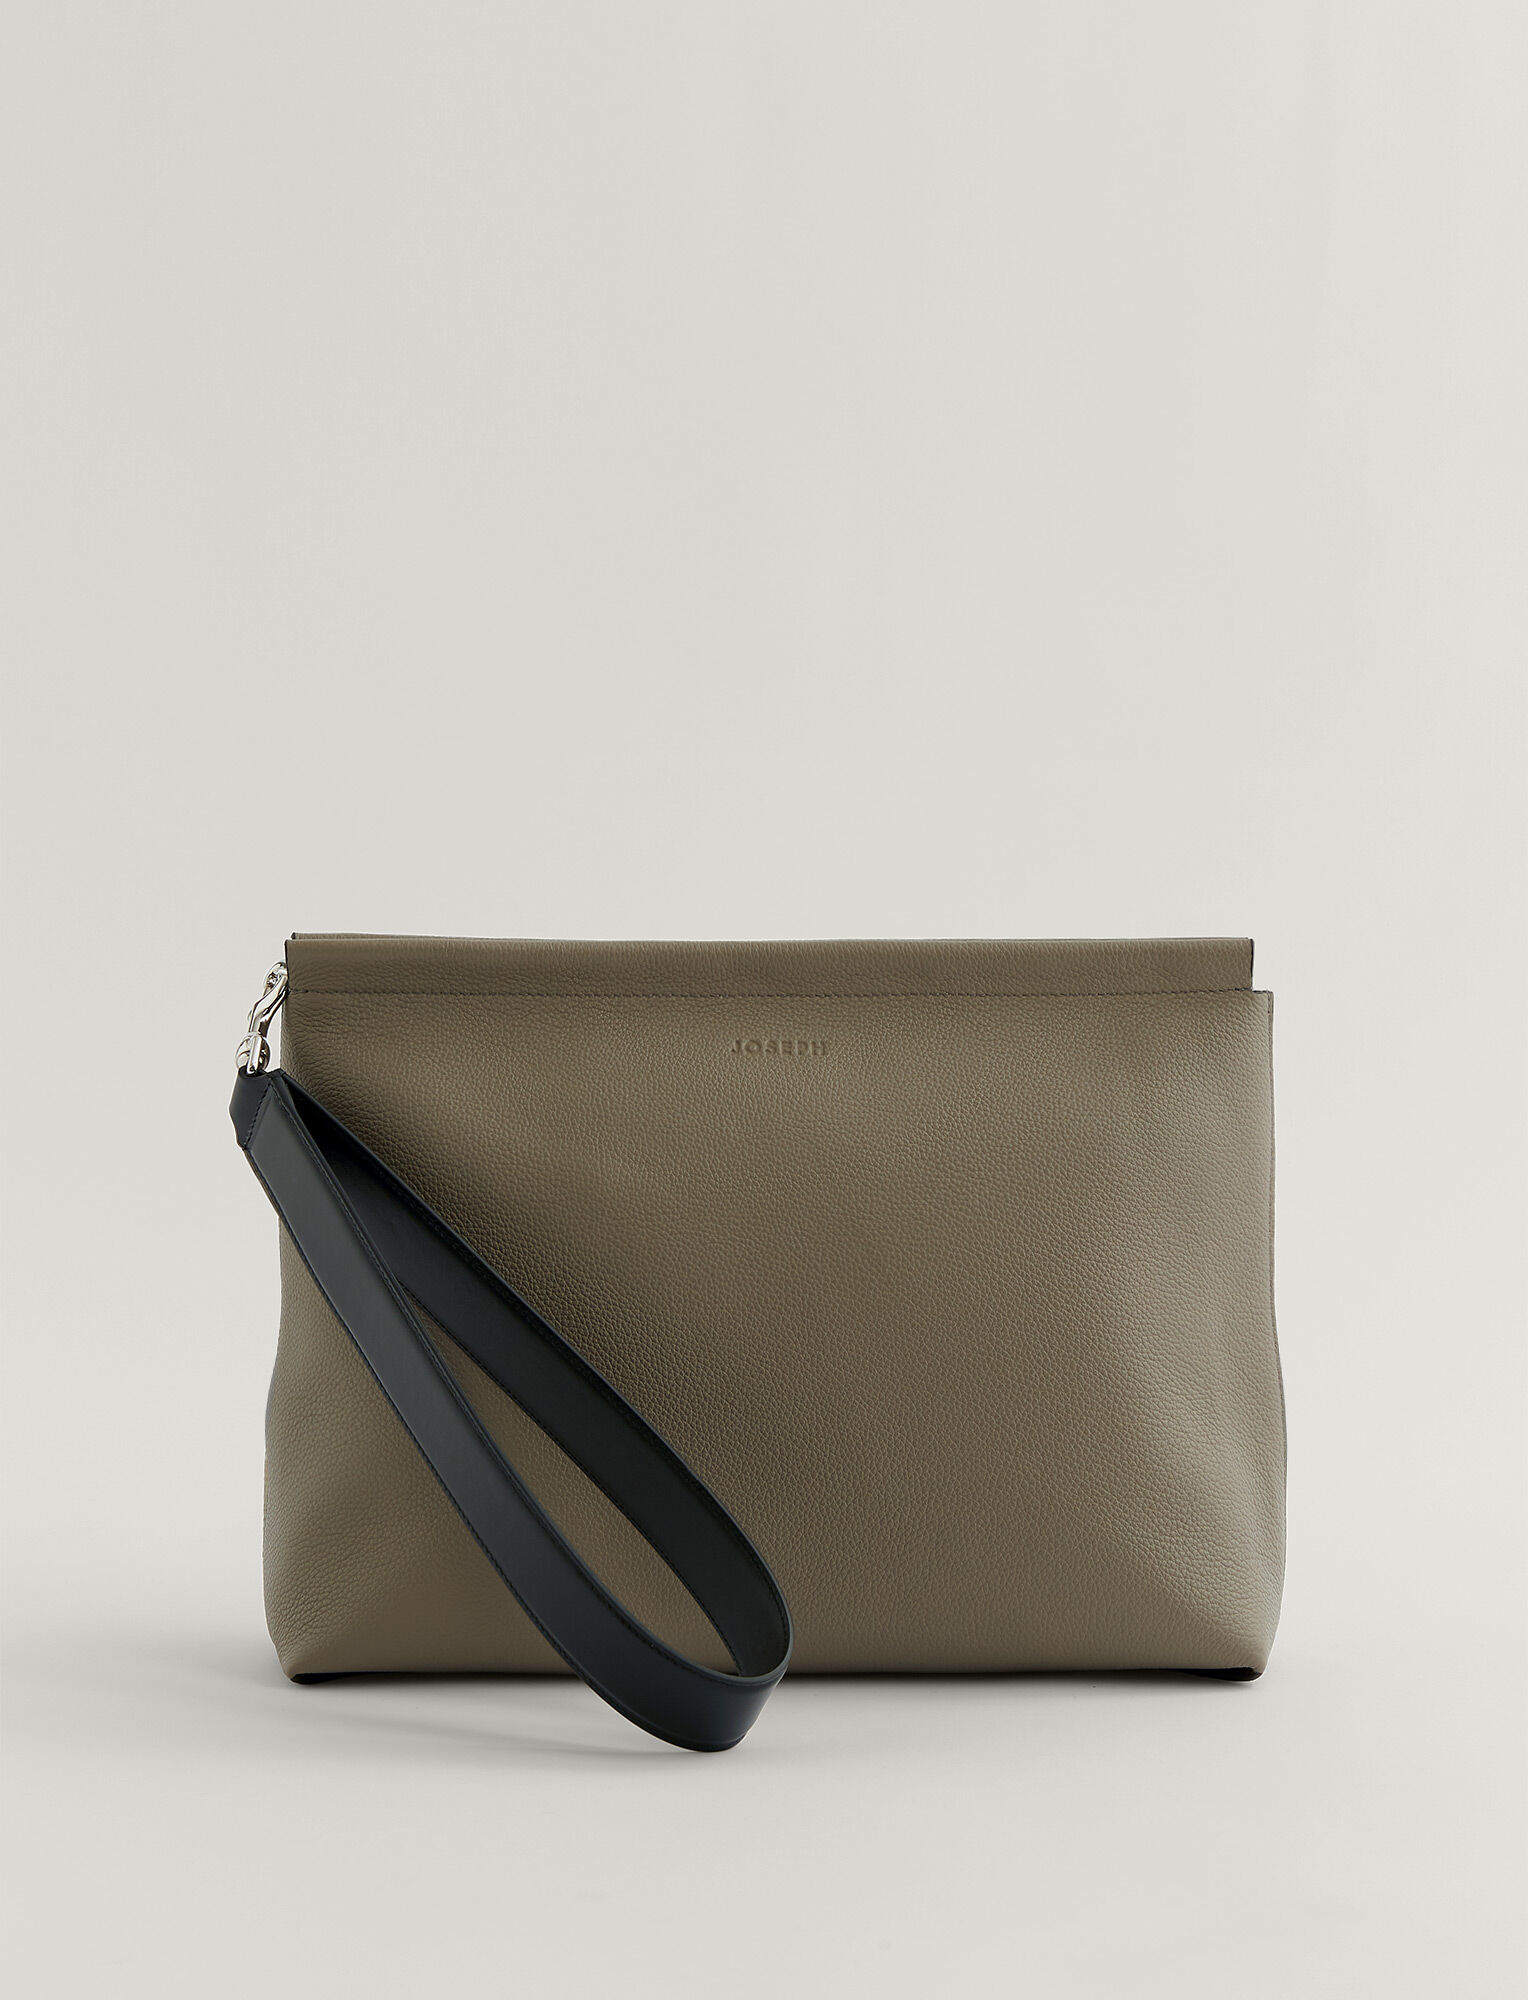 Joseph, Grain Leather Clutch Bag, in Grey